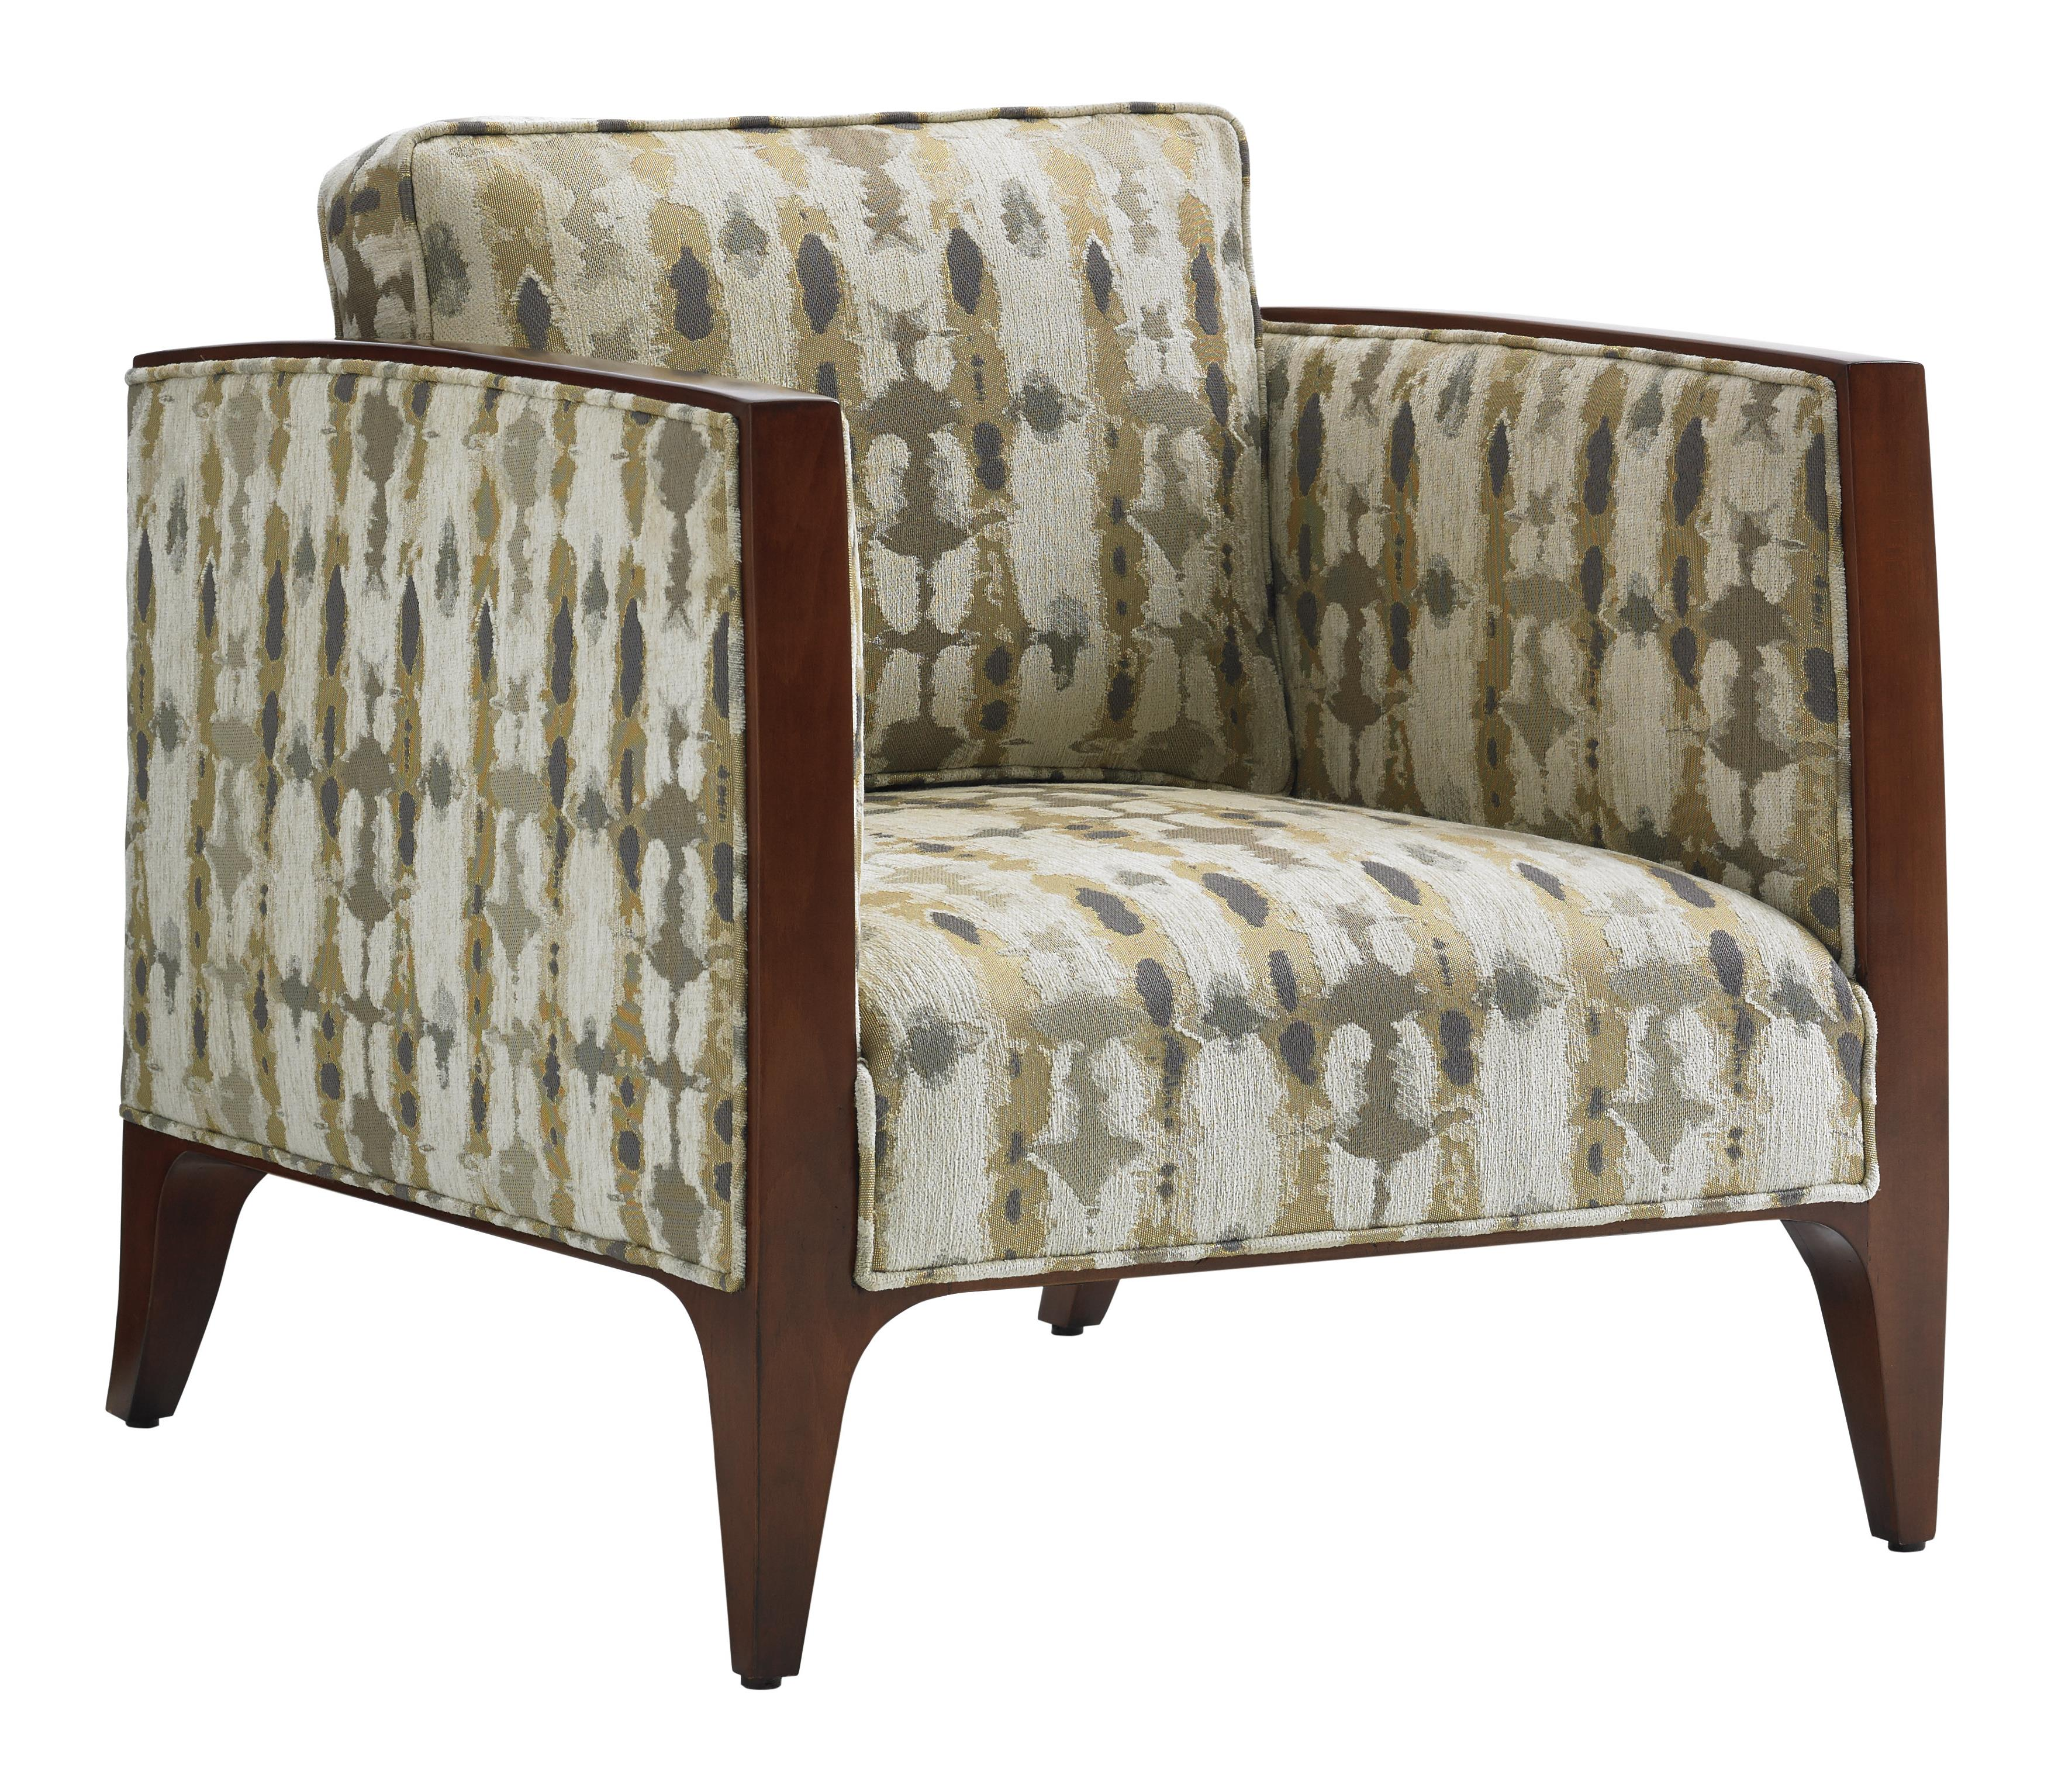 TAKE FIVE Cobble Hill Chair by Lexington at Baer's Furniture